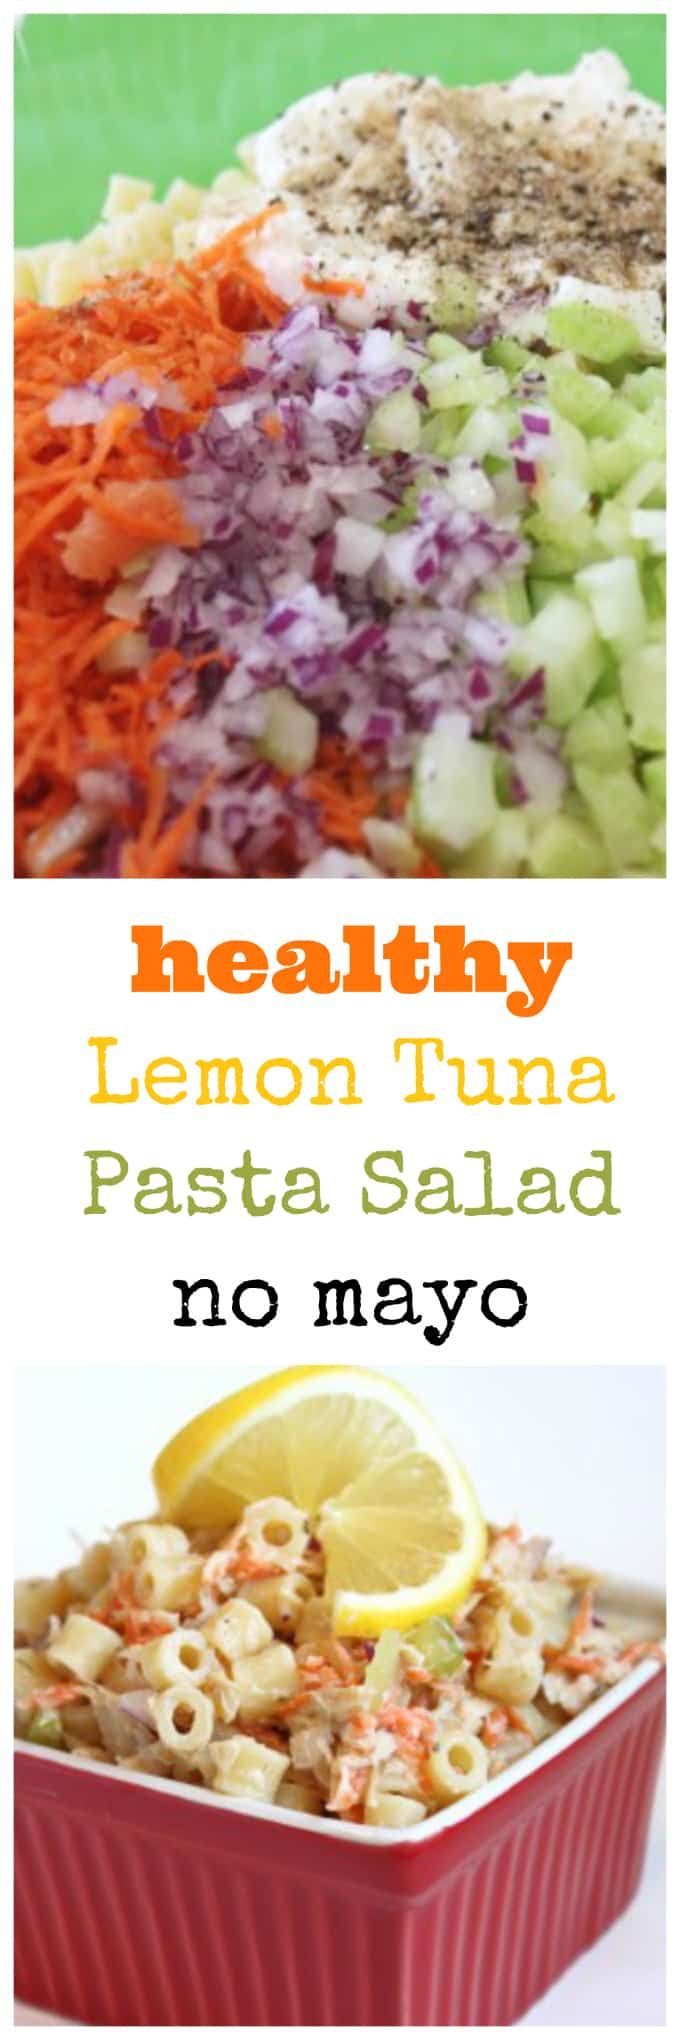 healthy lemon tuna pasta salad with no mayo @createdbydiane